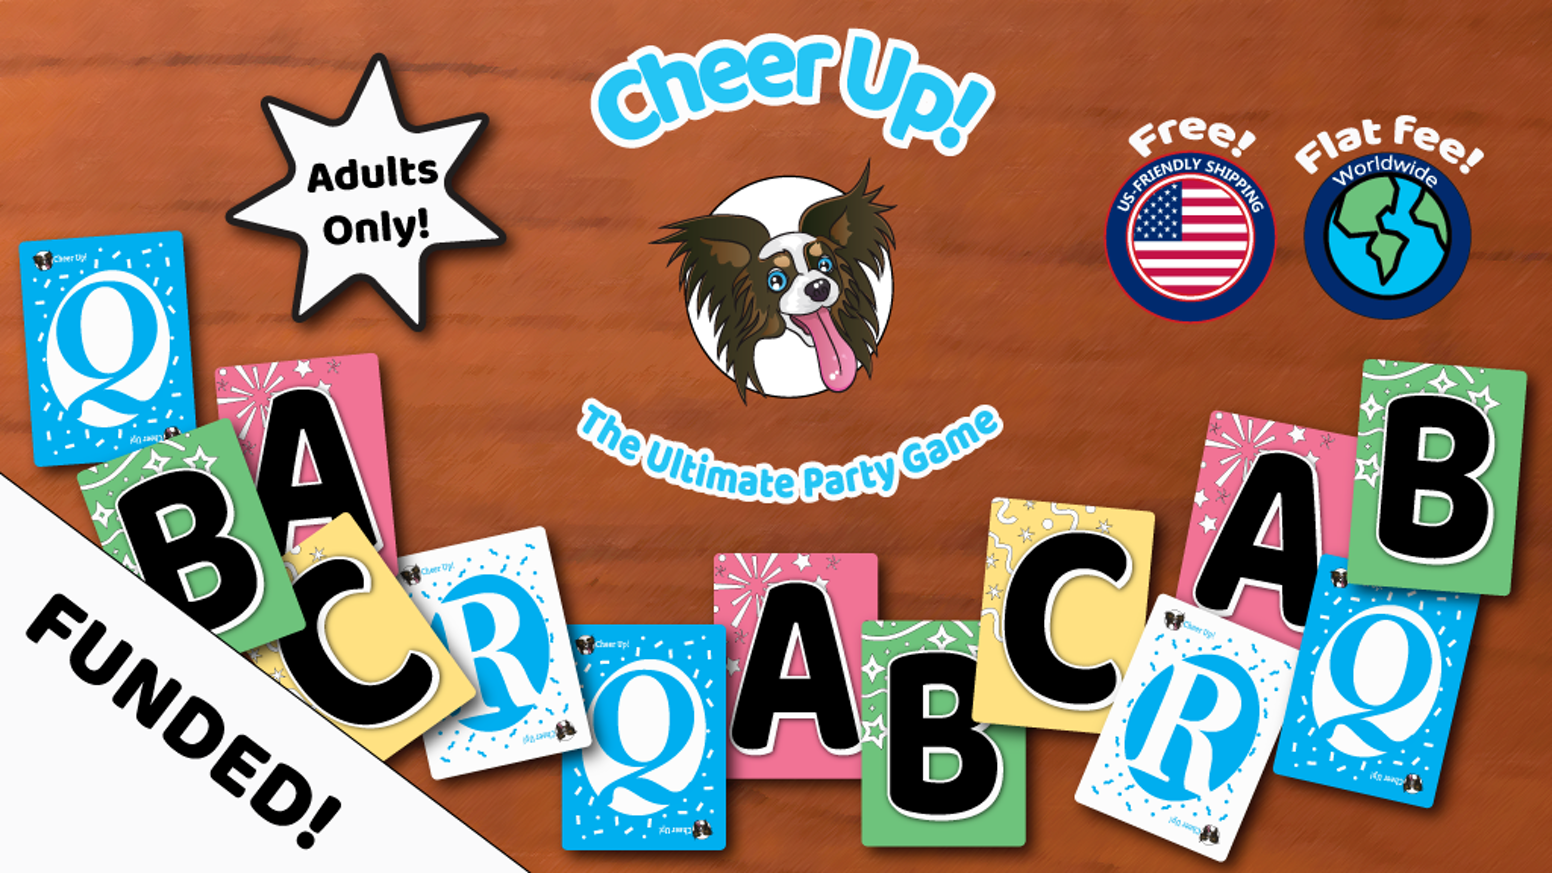 You make the jokes. You make the rules. Cheer Up! is a new party game designed to make your sad friends laugh.